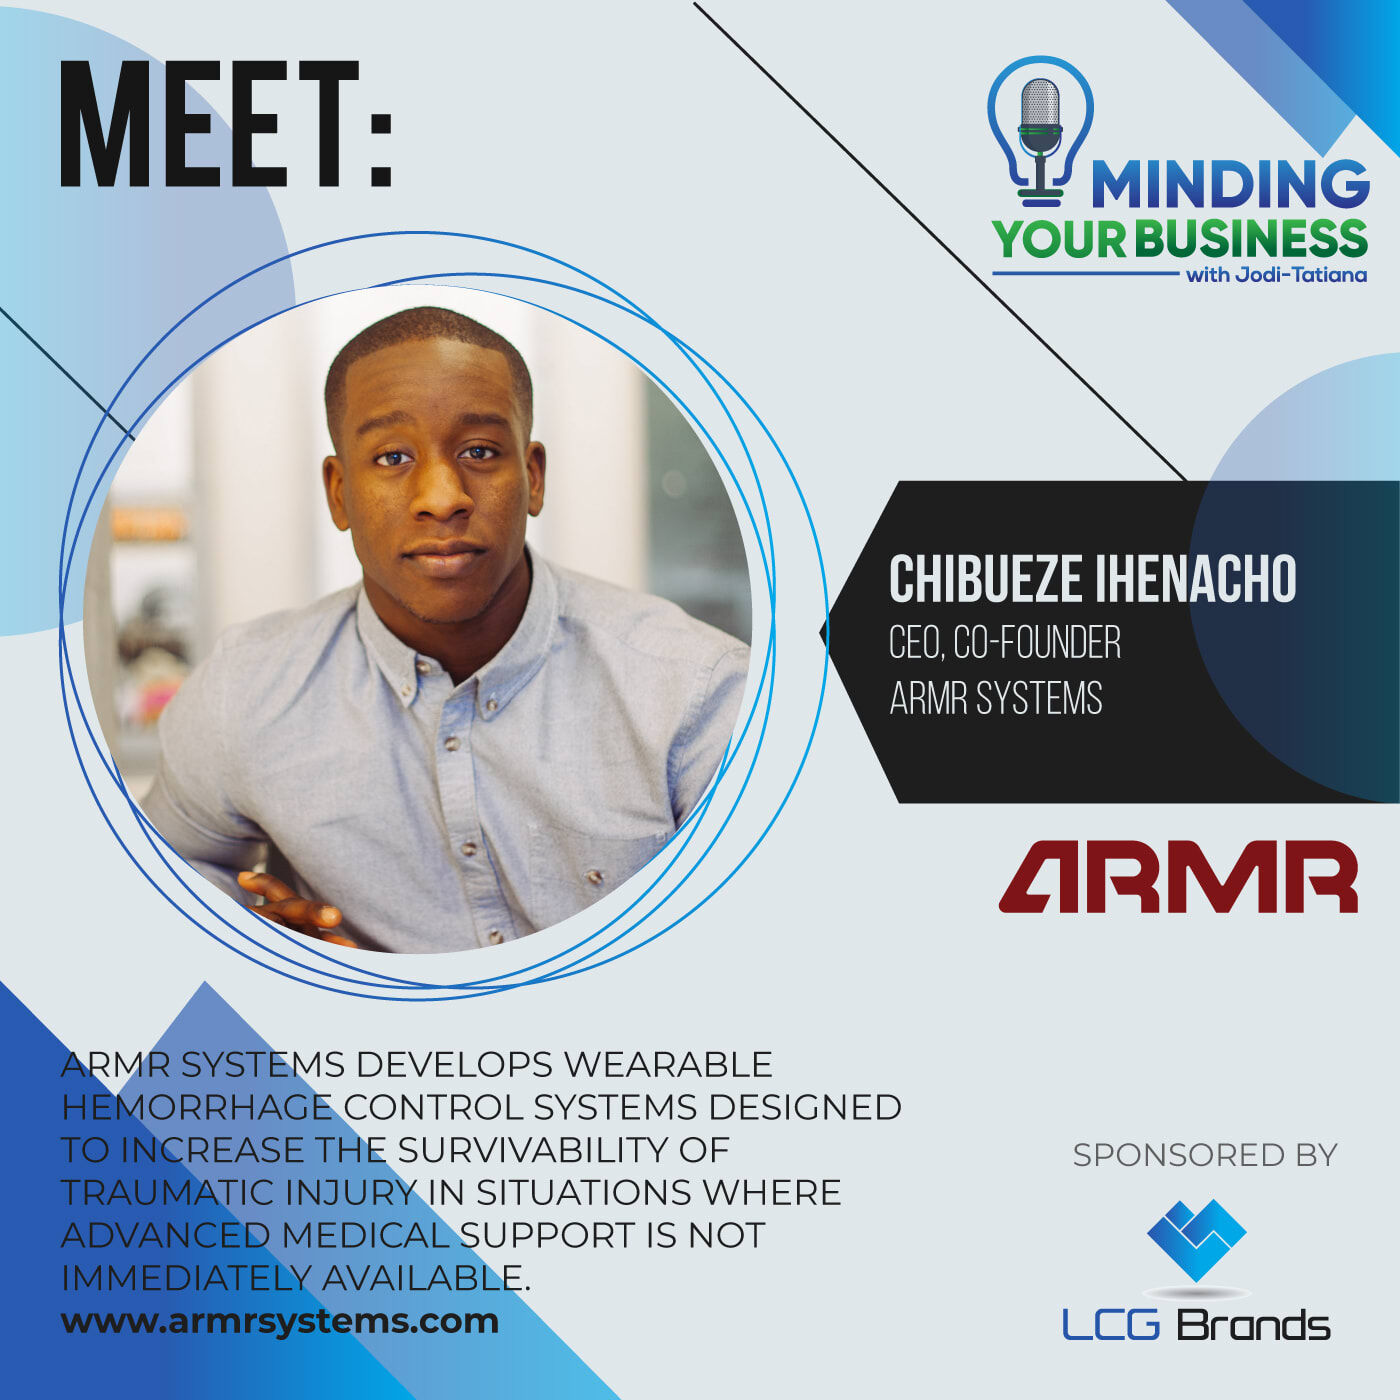 Episode 121: Meet ARMR Systems ceo/co-founder, Chibueze Ihenacho (Maryland-USA)